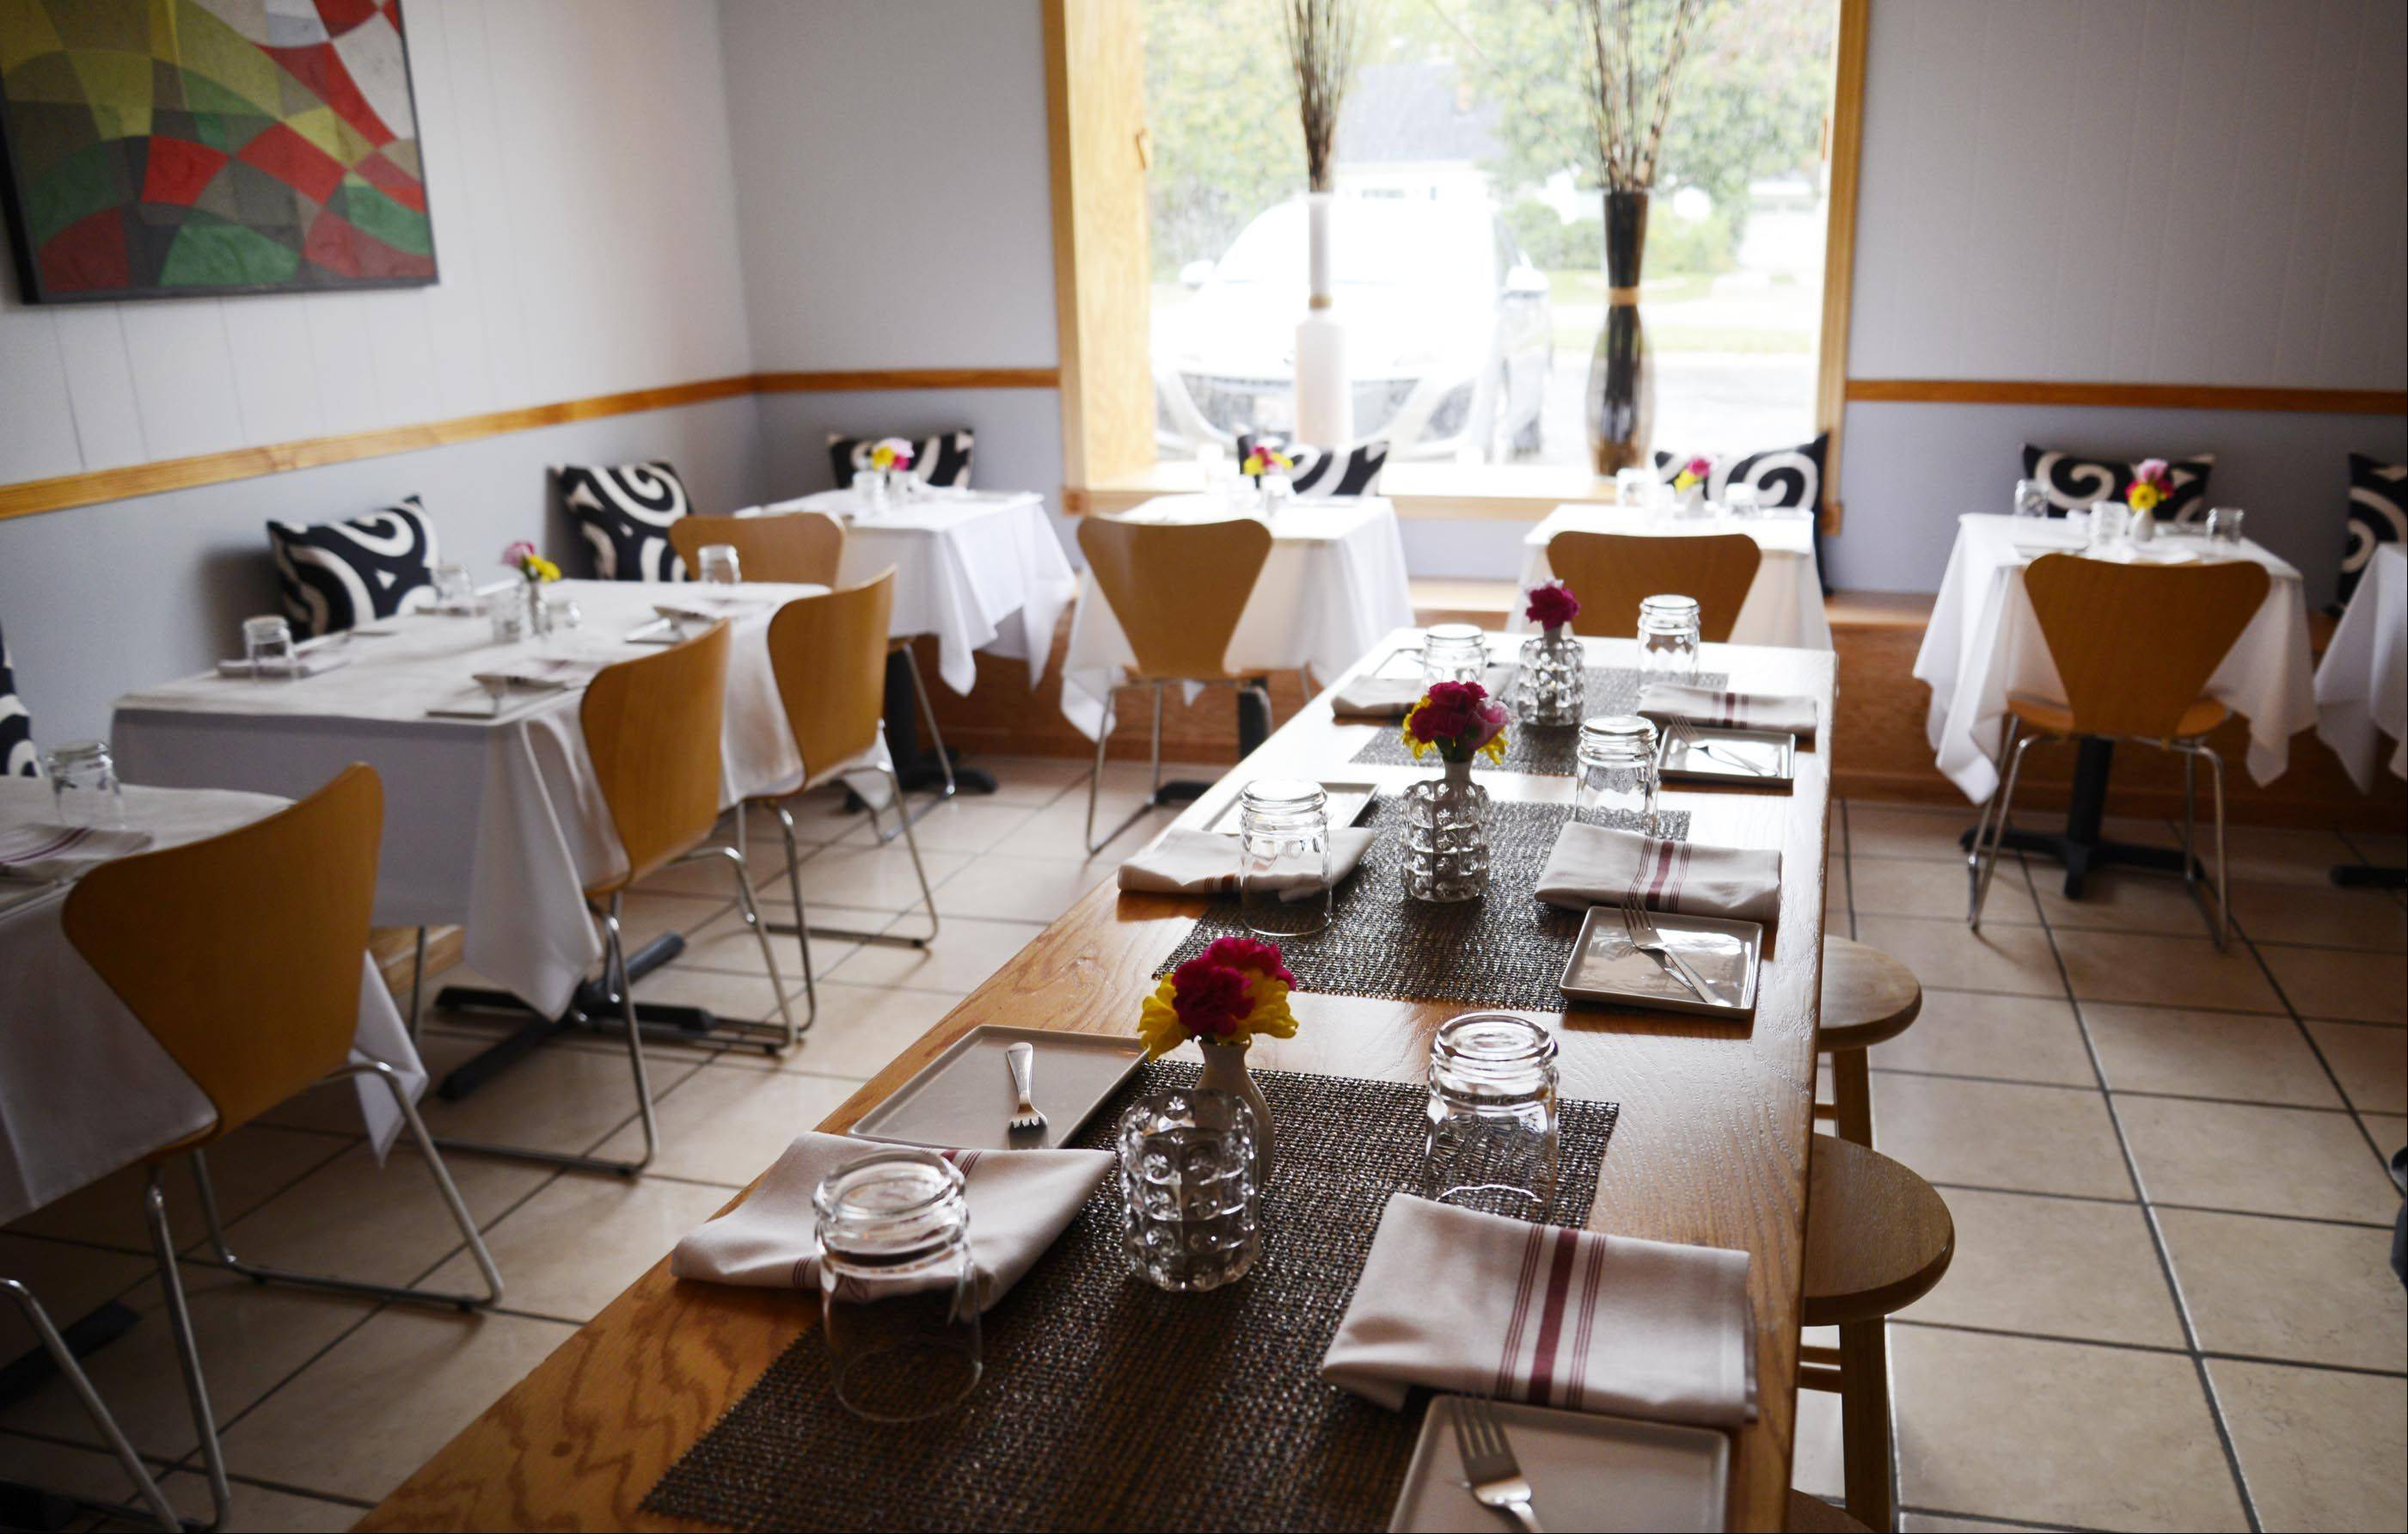 The main dining room at Altiro features a communal table.